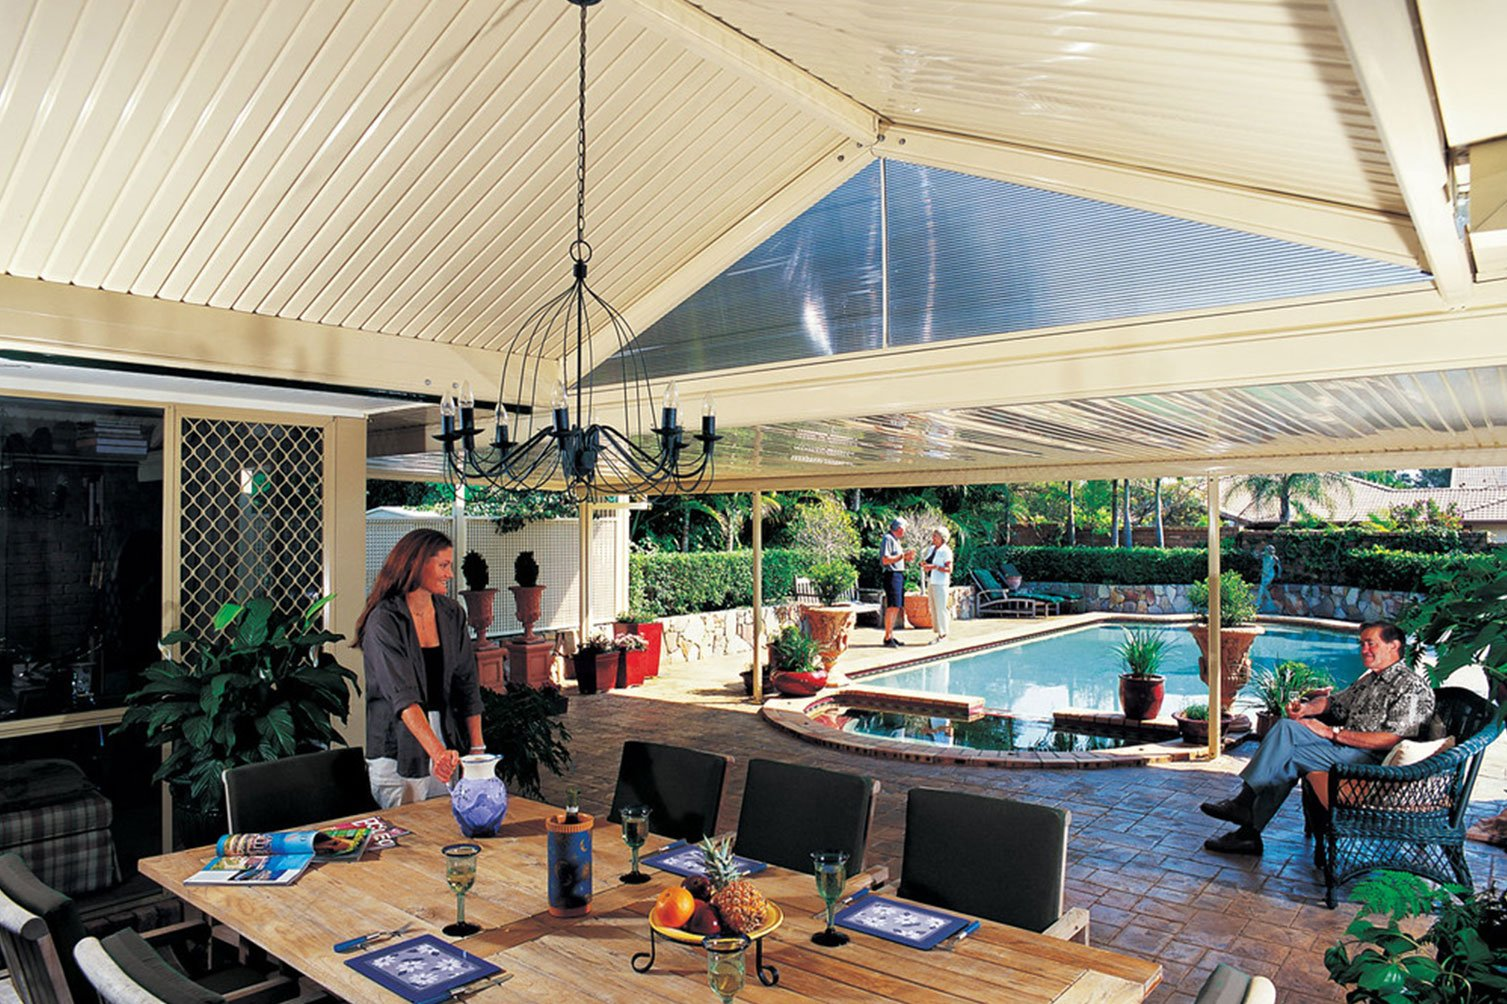 Fun-filled outdoor gatherings under a roof patio in Murwillumbah